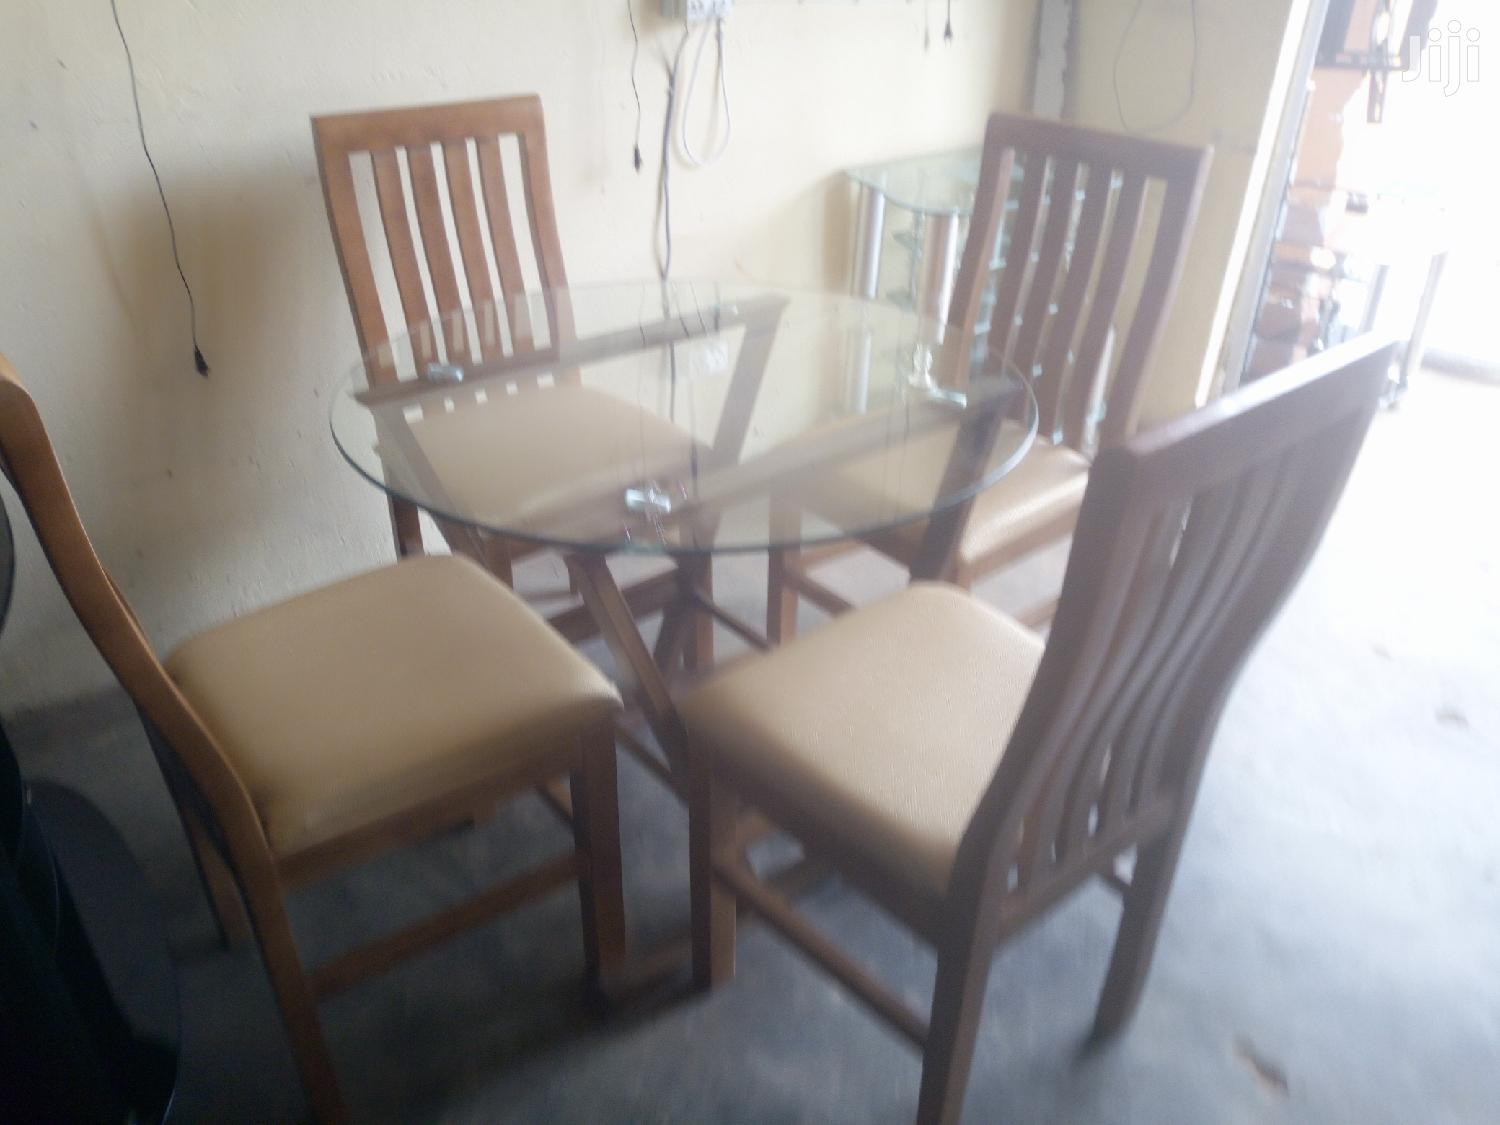 4 Seater Round Dining Table | Furniture for sale in Wakiso, Central Region, Uganda